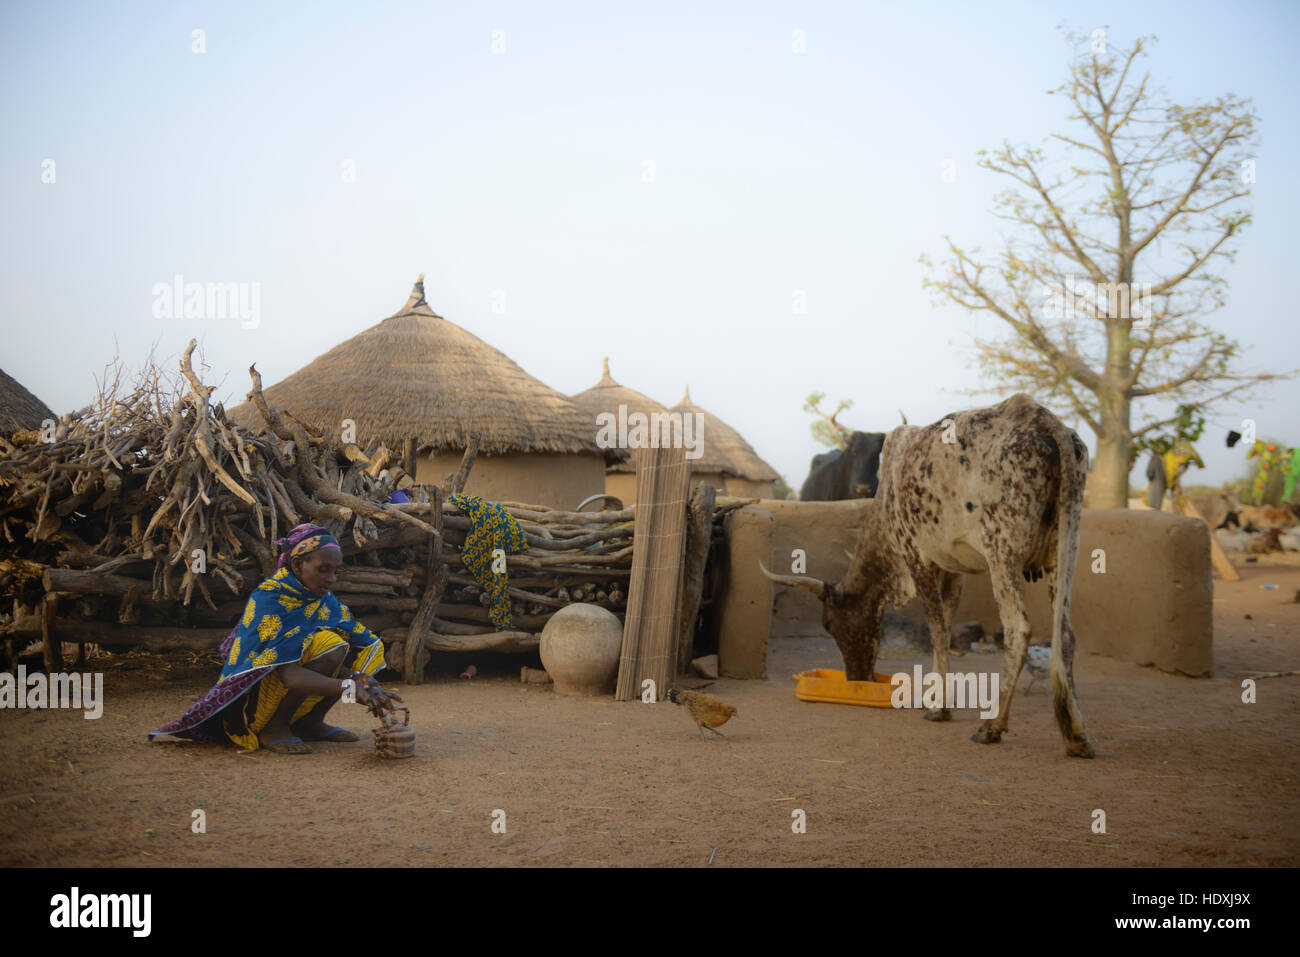 Rural life in a Fulani village of the Sahel in northeastern Burkina Faso - Stock Image